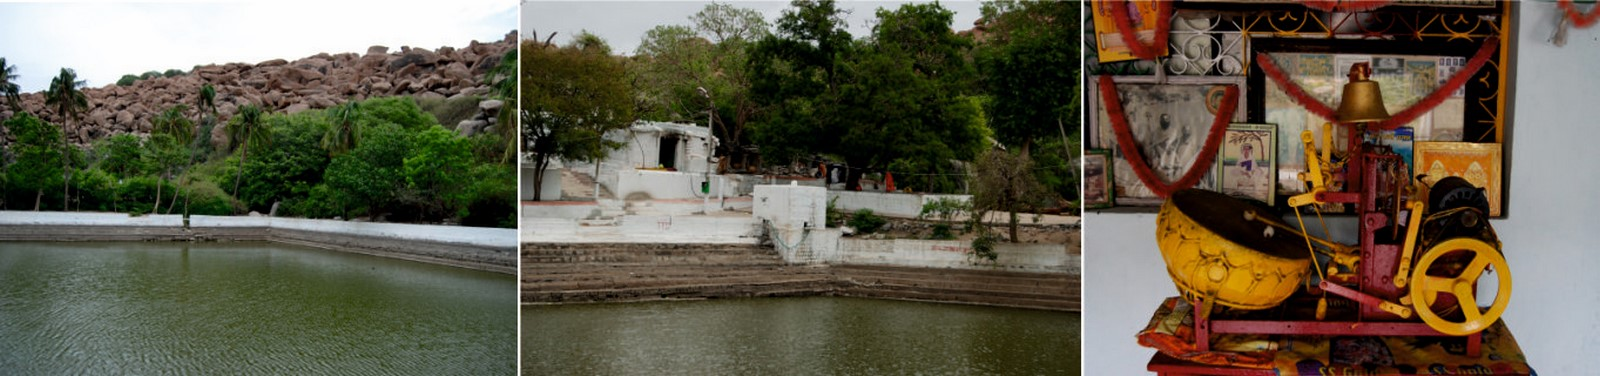 Anegundi- City of Vali-Pampa Sarovar